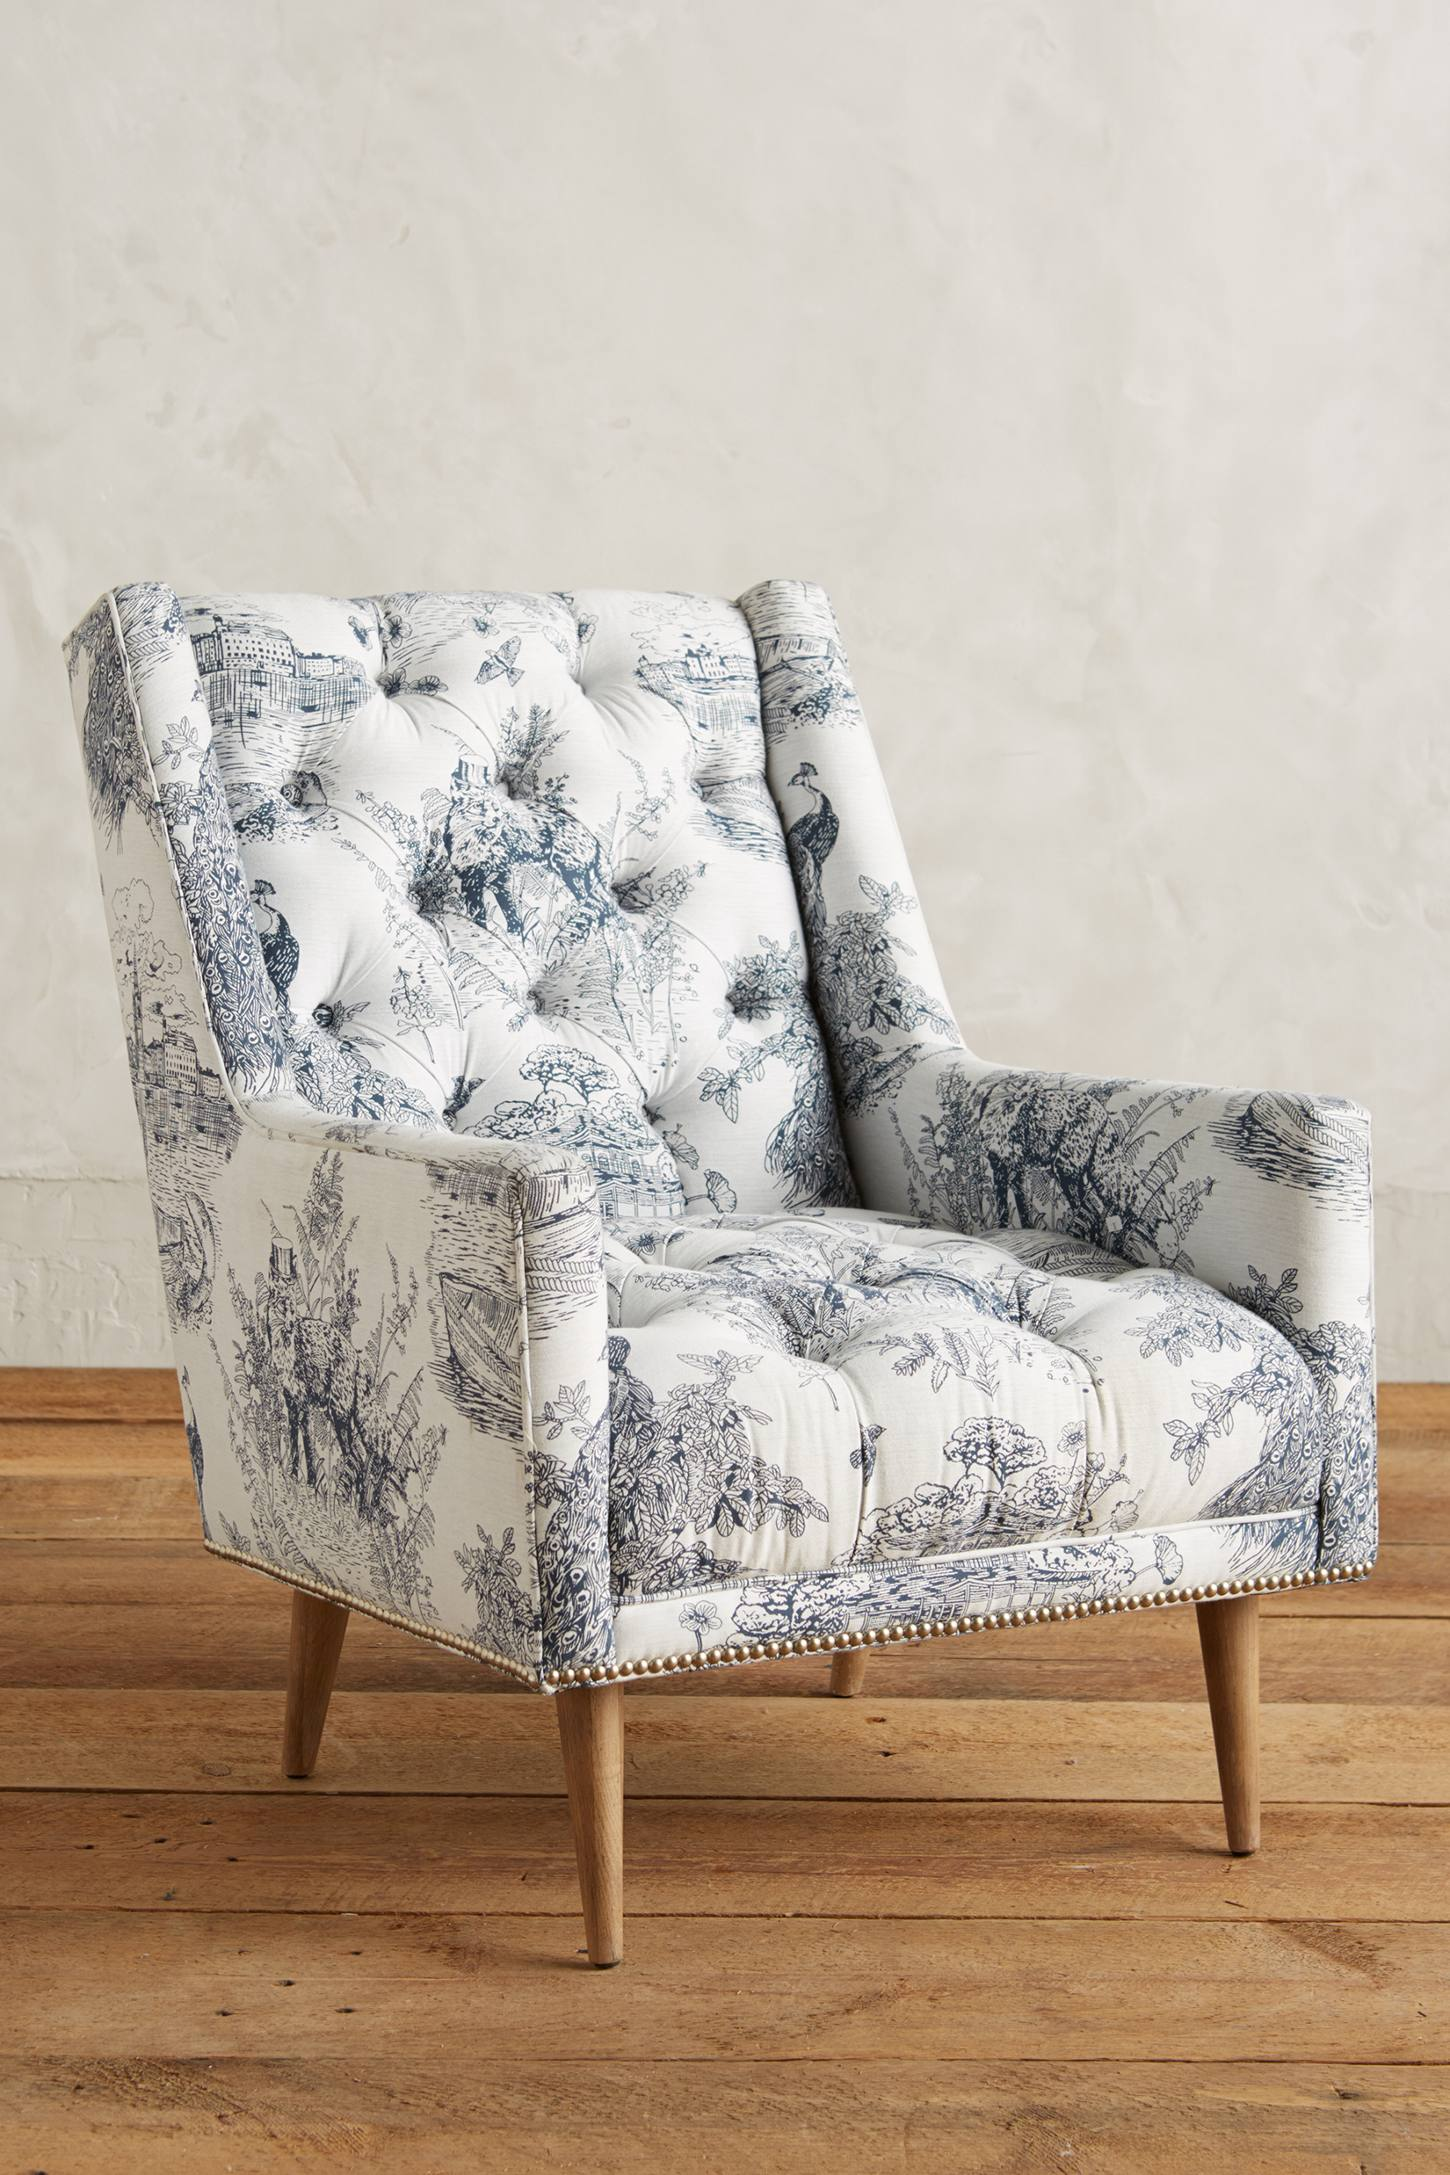 Toile Chair Anthropologie 39s September Arrivals Furniture Topista